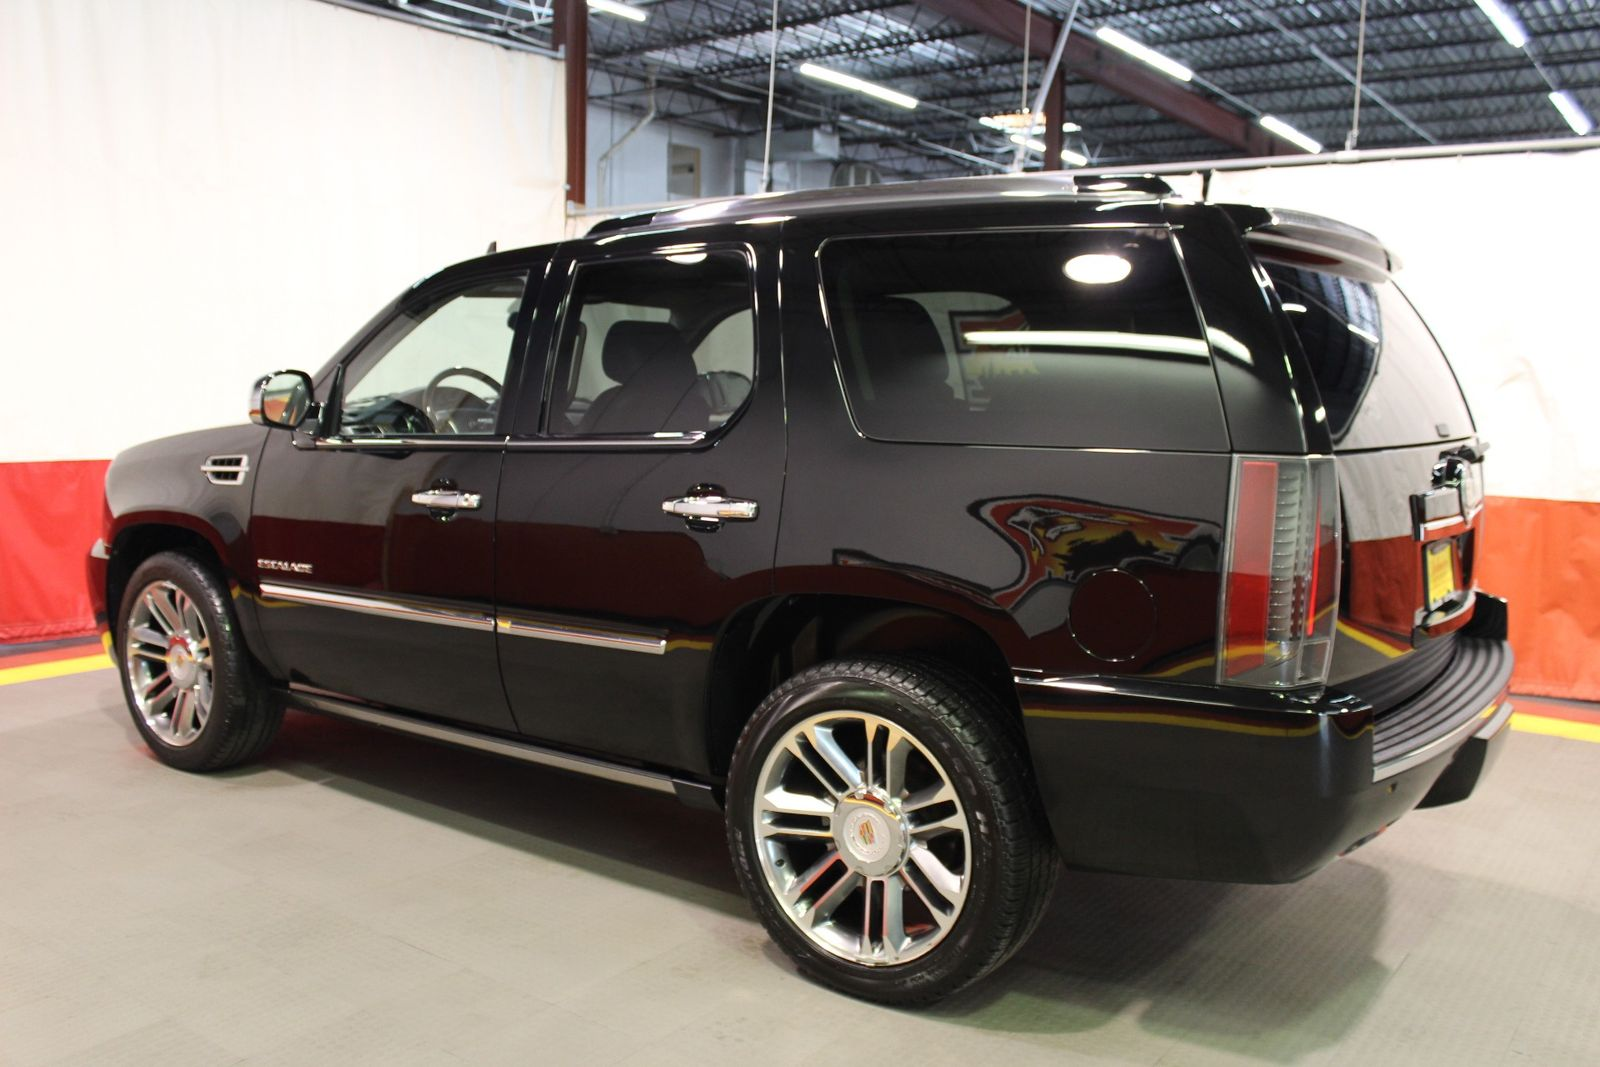 centered escalade premium shot ext large awd dash pickup wide research groovecar cadillac